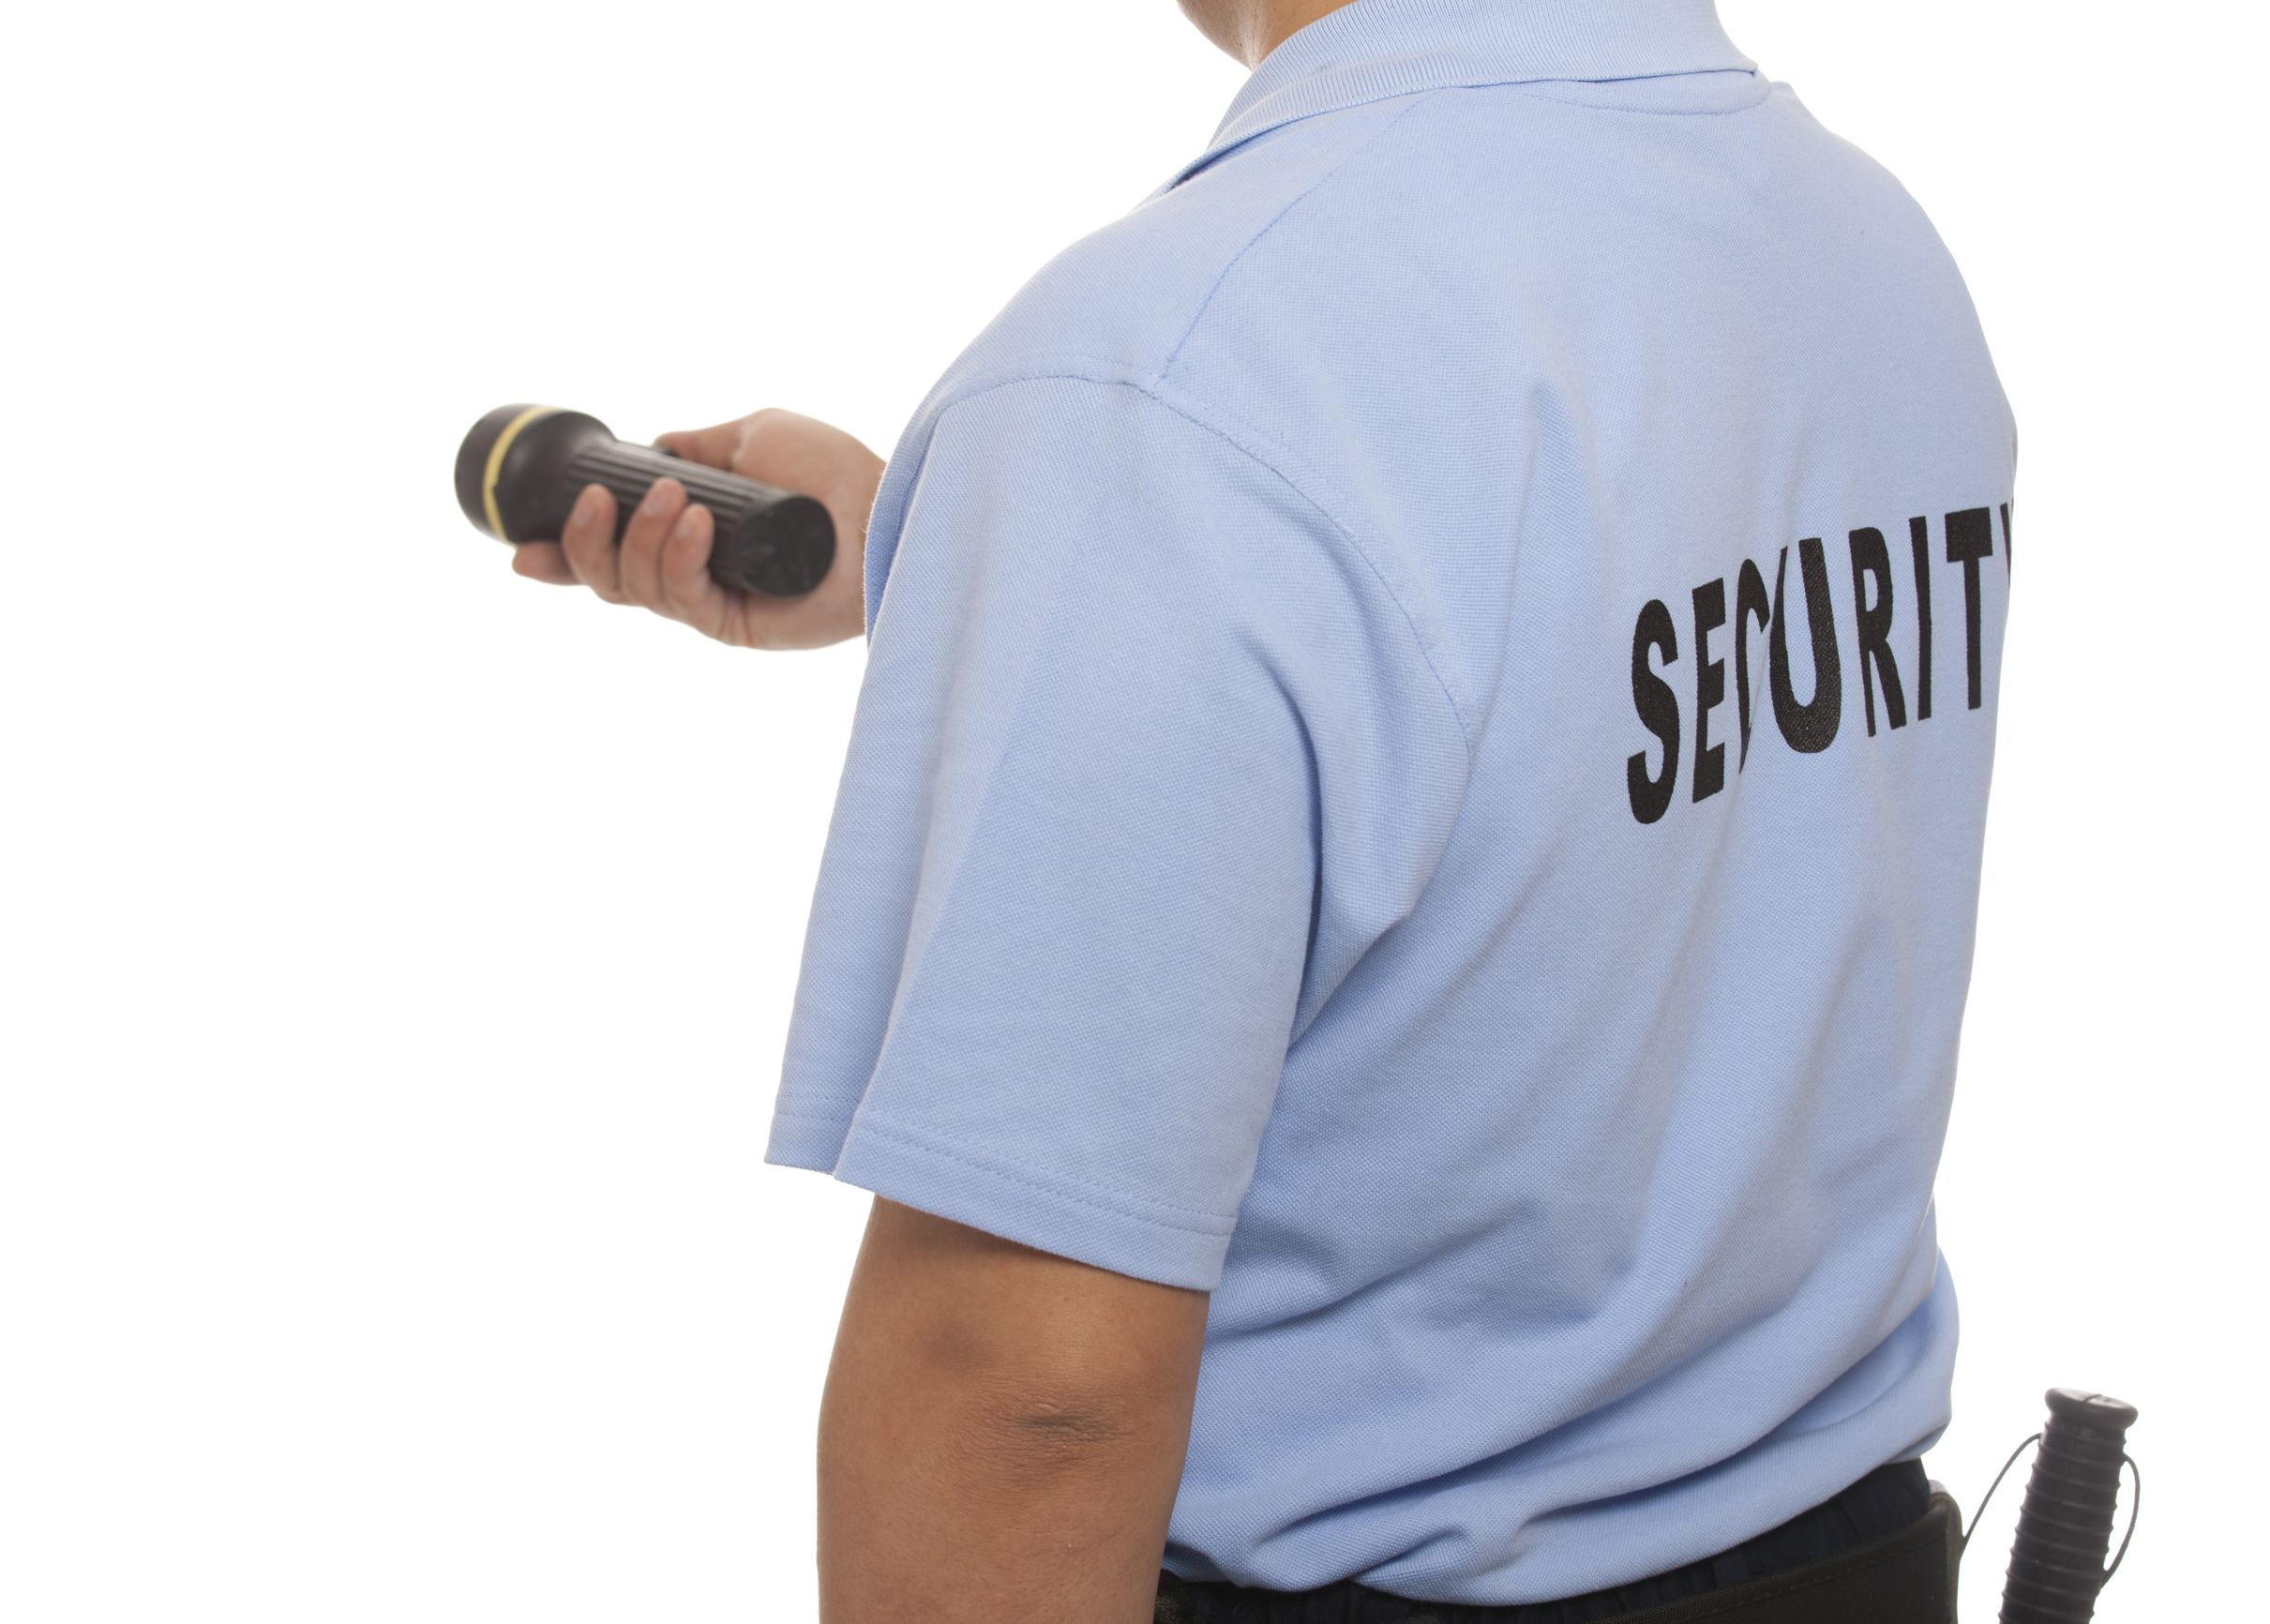 15037556-a-detail-of-a-security-guard.jpg